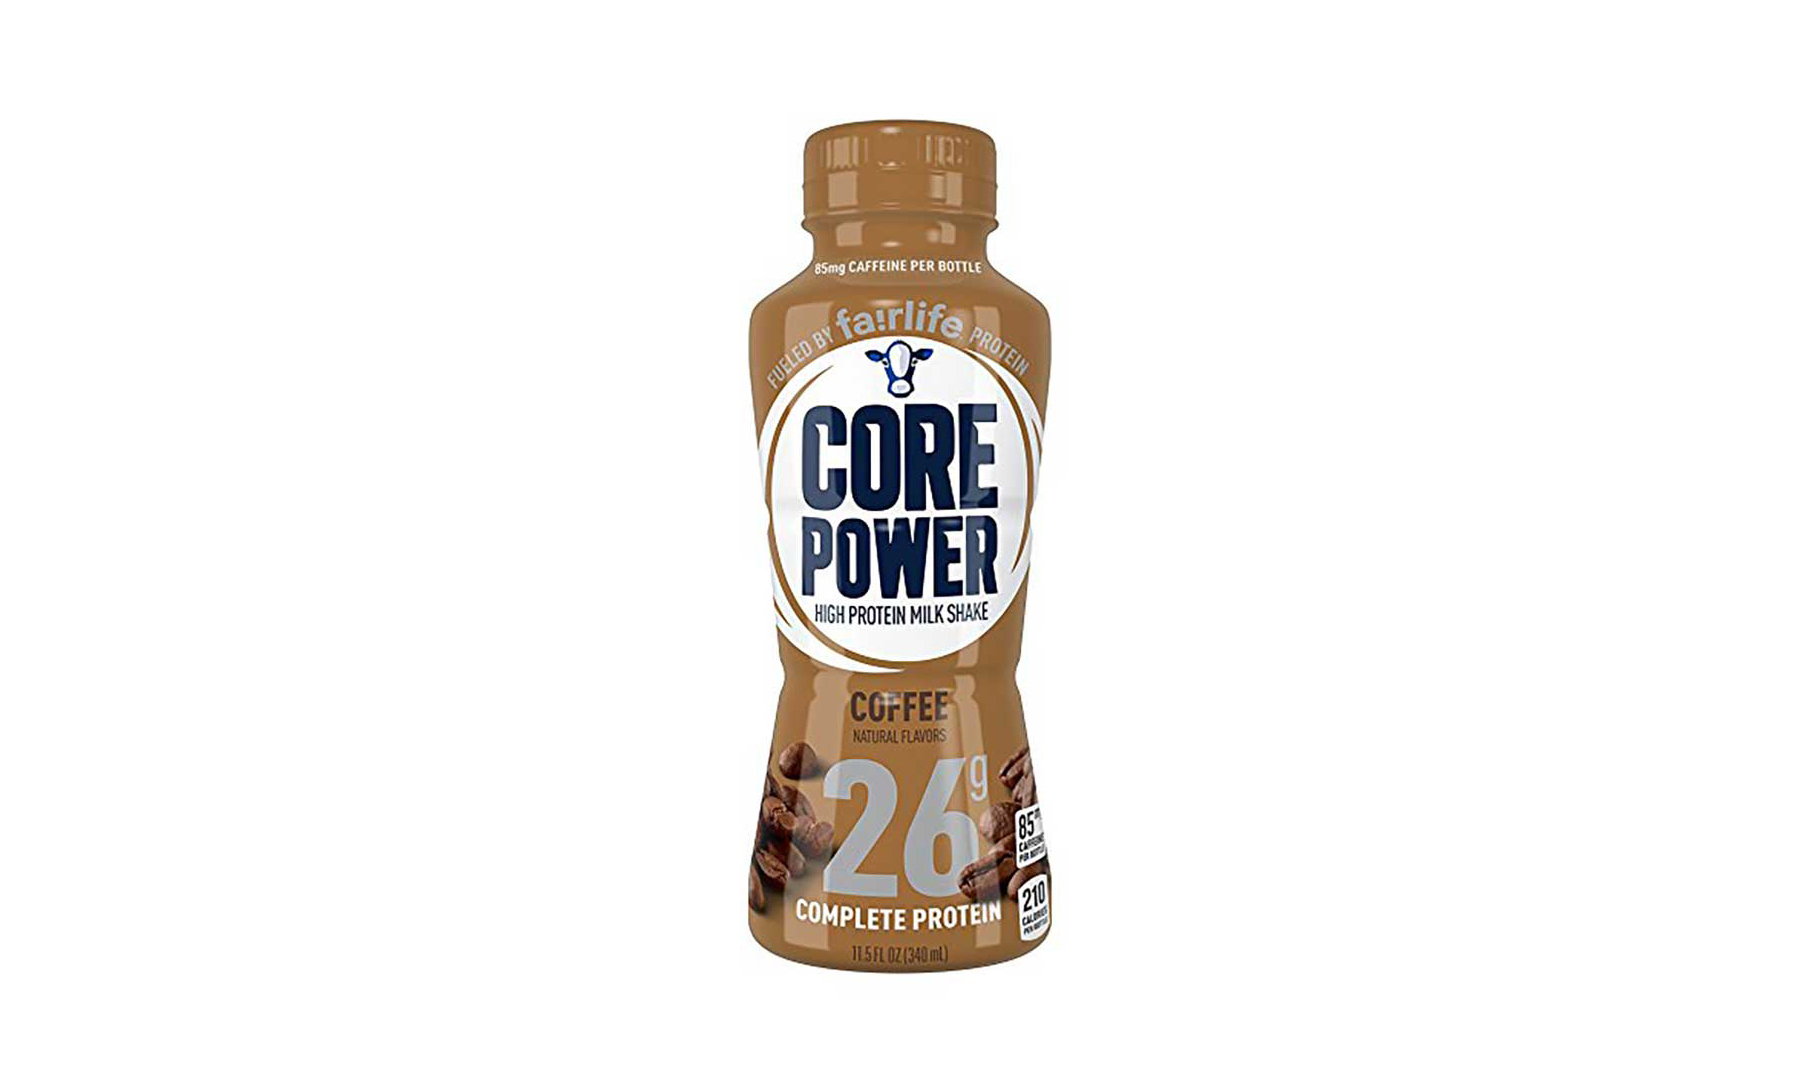 Fairlife Core Power Coffee